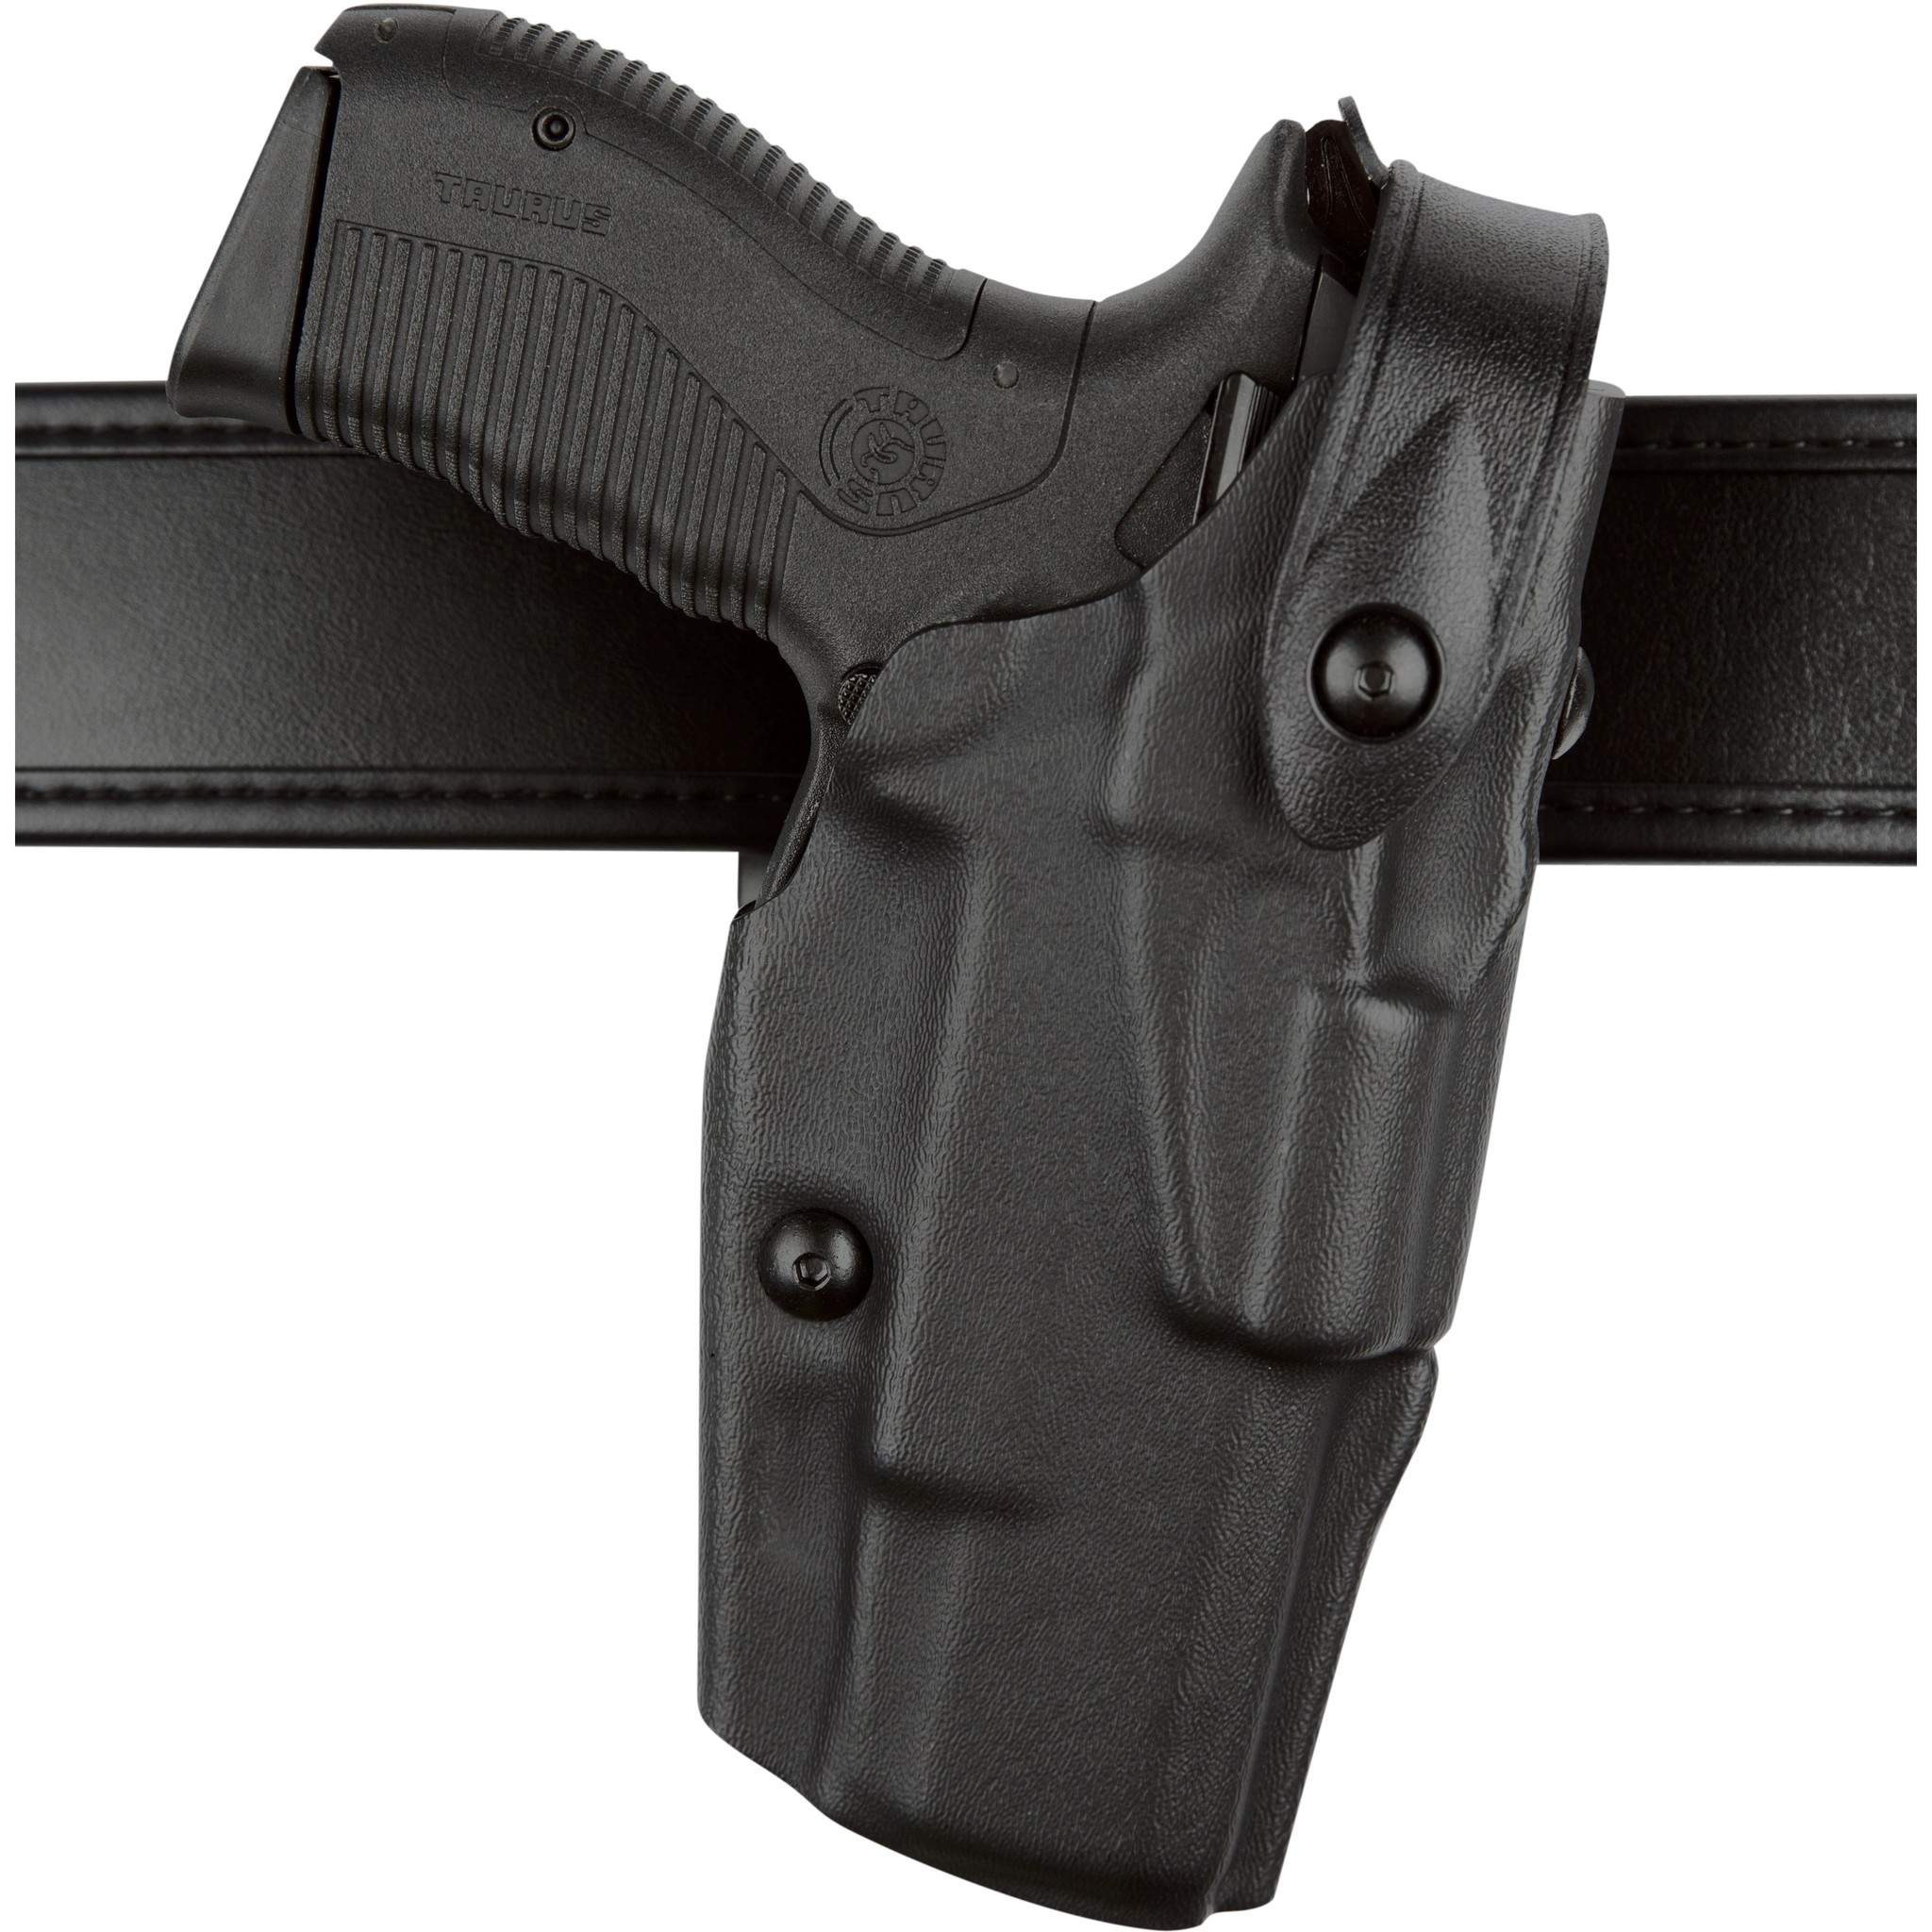 6360 ALS®/SLS Mid Ride, level III retention™ duty holster